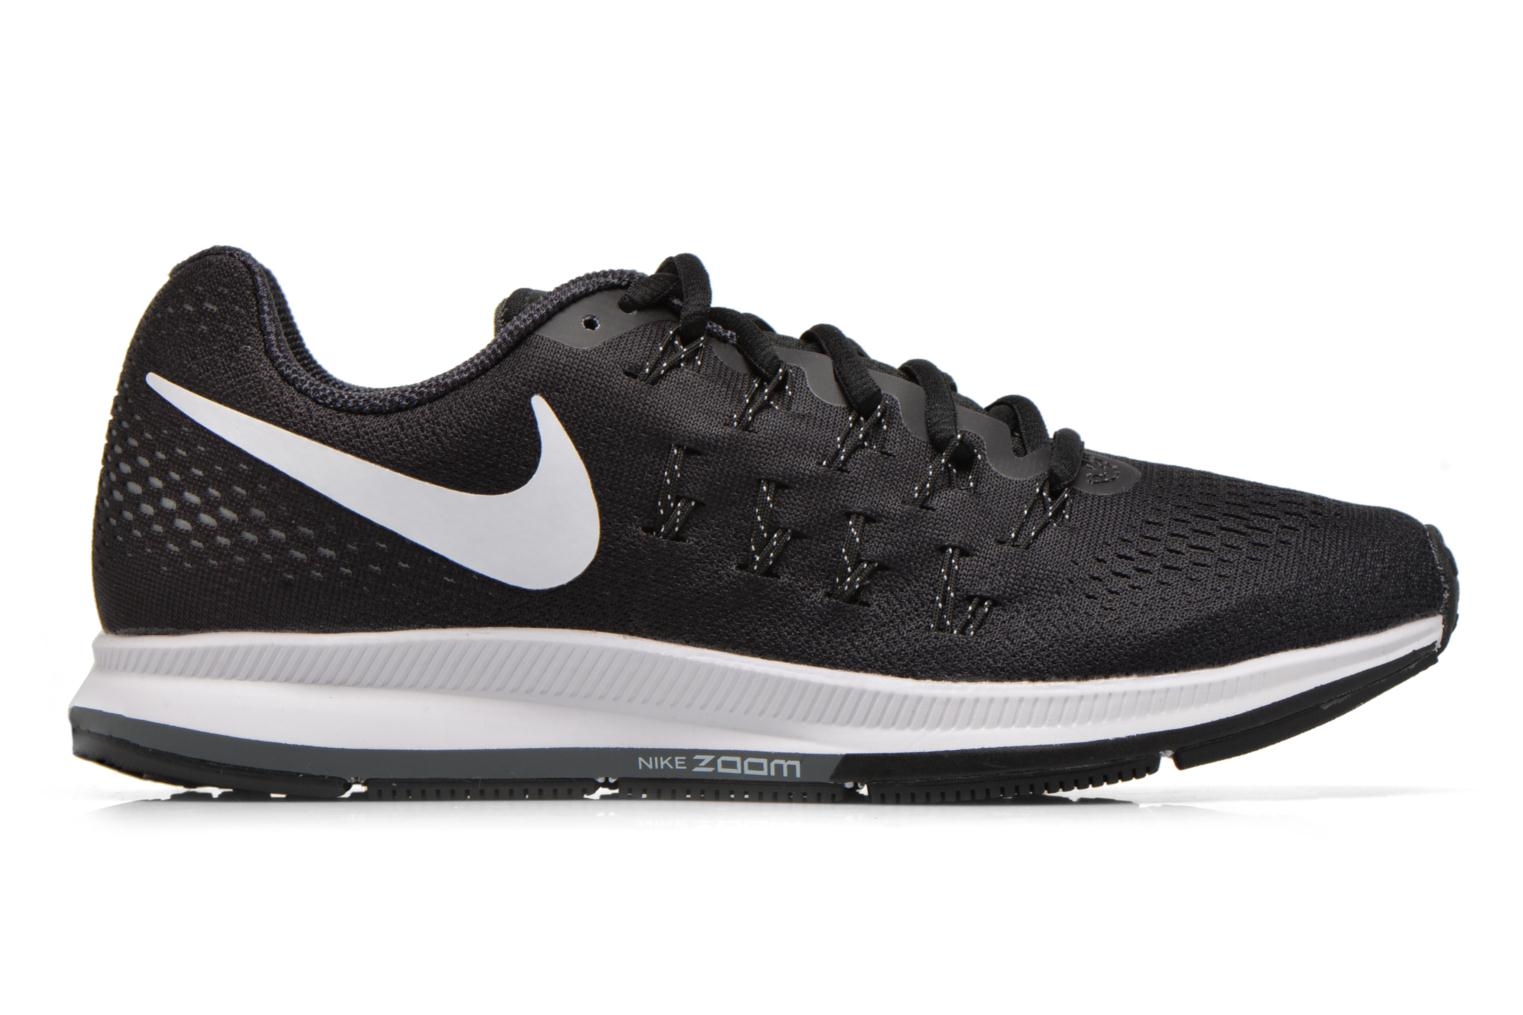 Nike Air Zoom Pegasus 33 BLACK/WHITE-ANTHRACITE-CL GREY